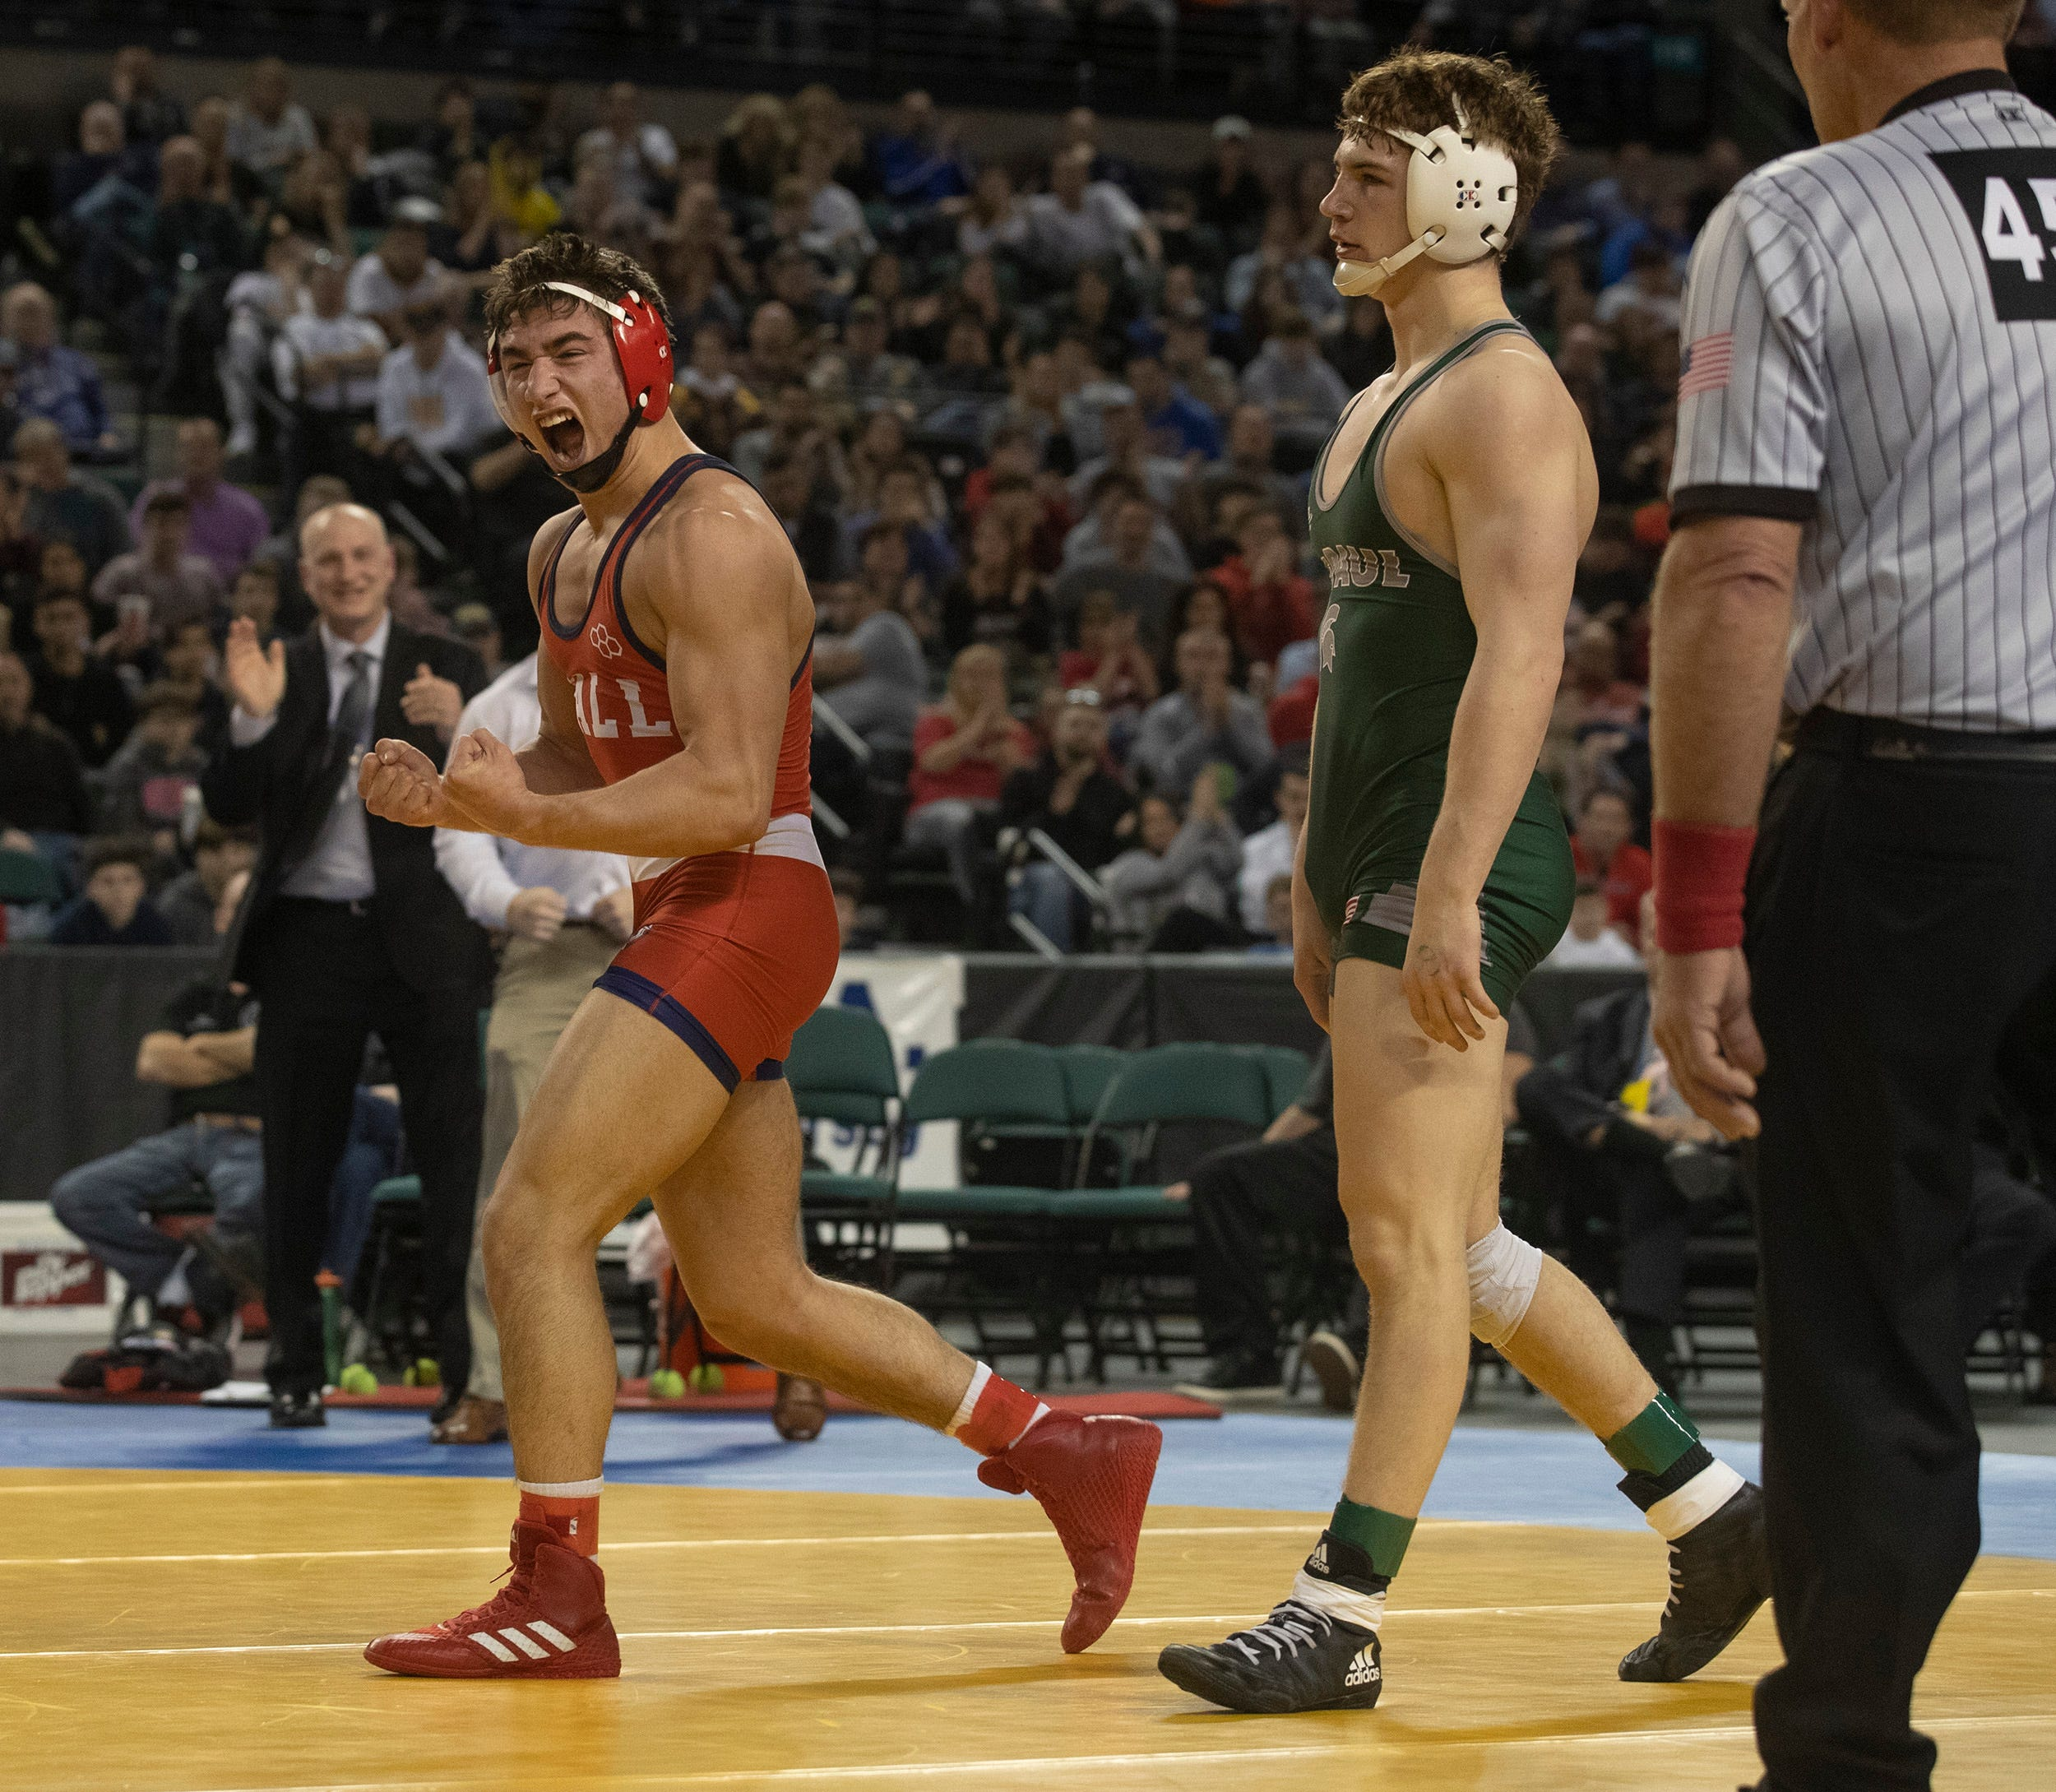 Robert Kanniard of Wall celebrates as he wins the NJSIAA 160-pound championship Saturday afternoon at Boardwalk Hall, Atlantic City.